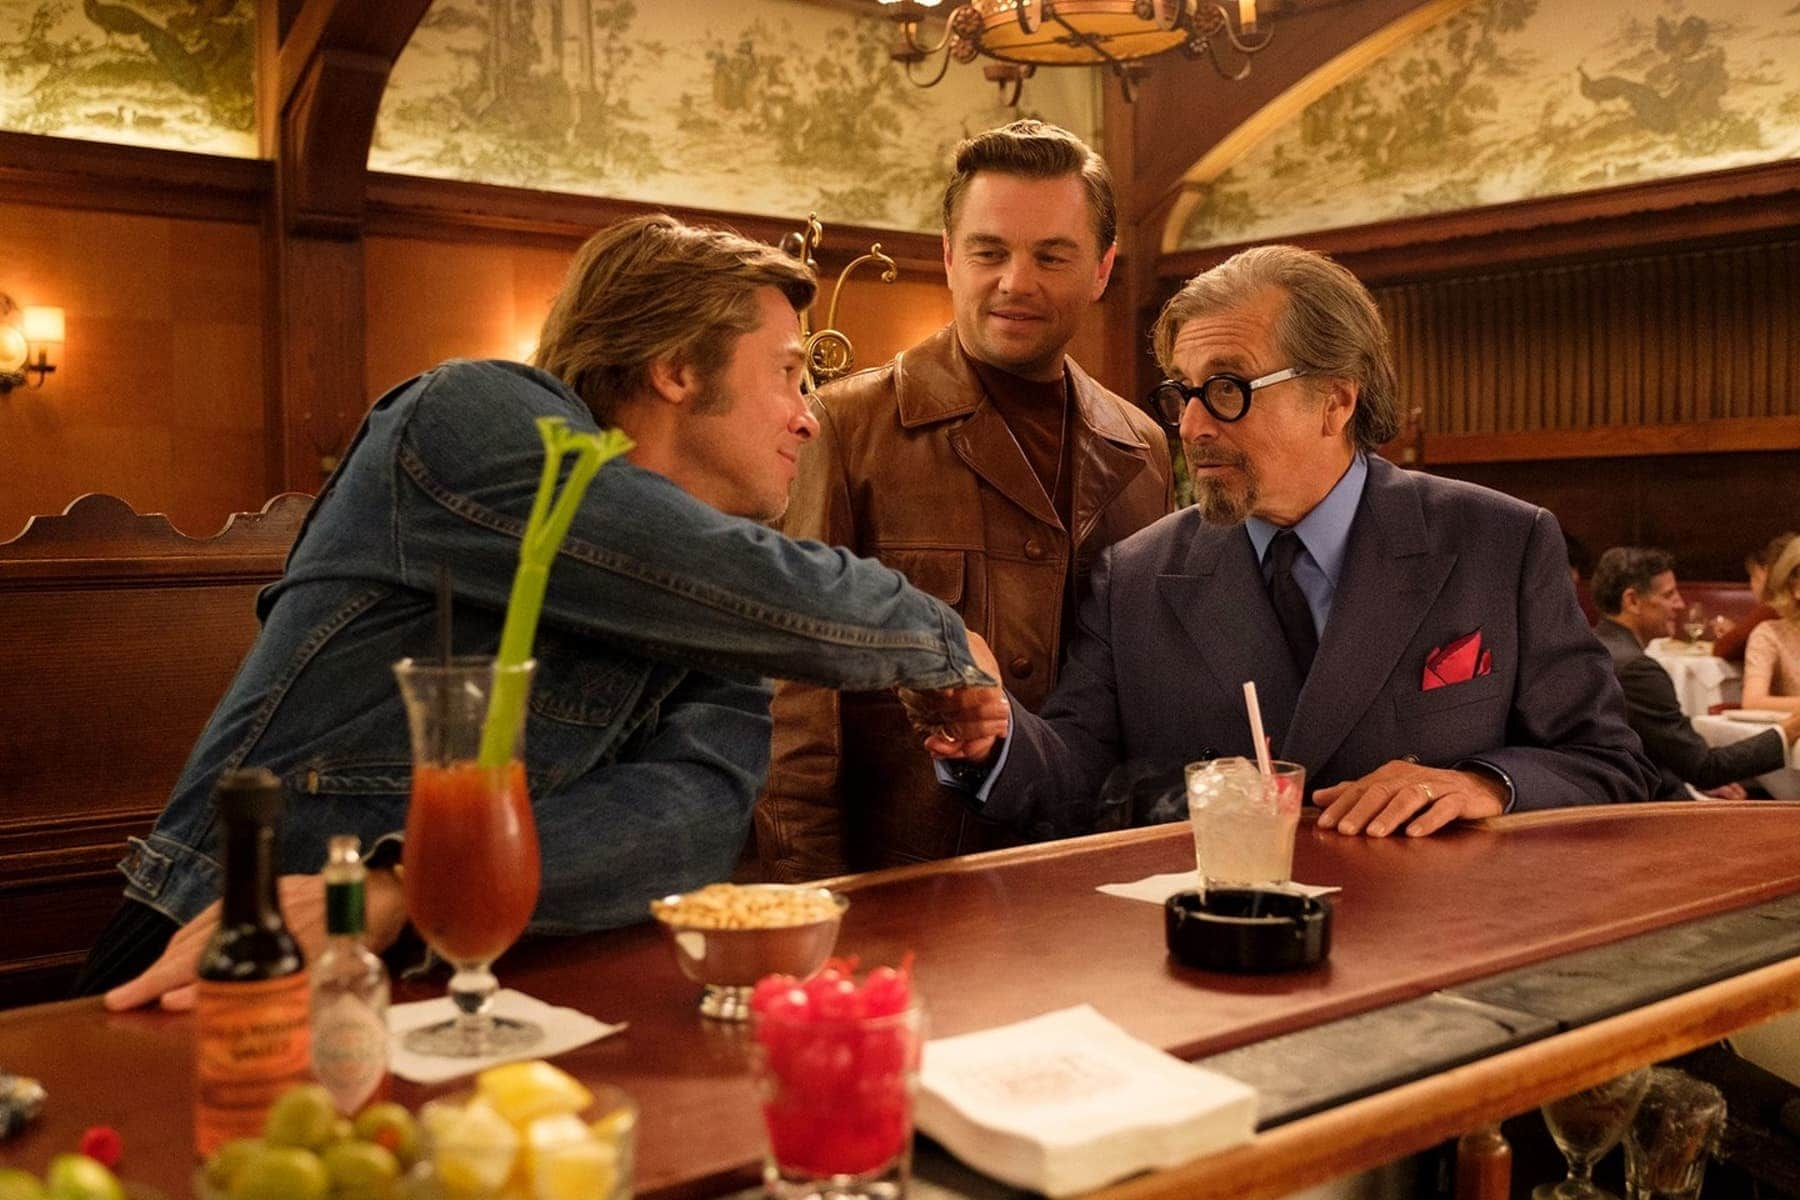 Leonardo DiCaprio, Brad Pitt & Al Pacino in Columbia Pictures' Once Upon a Time